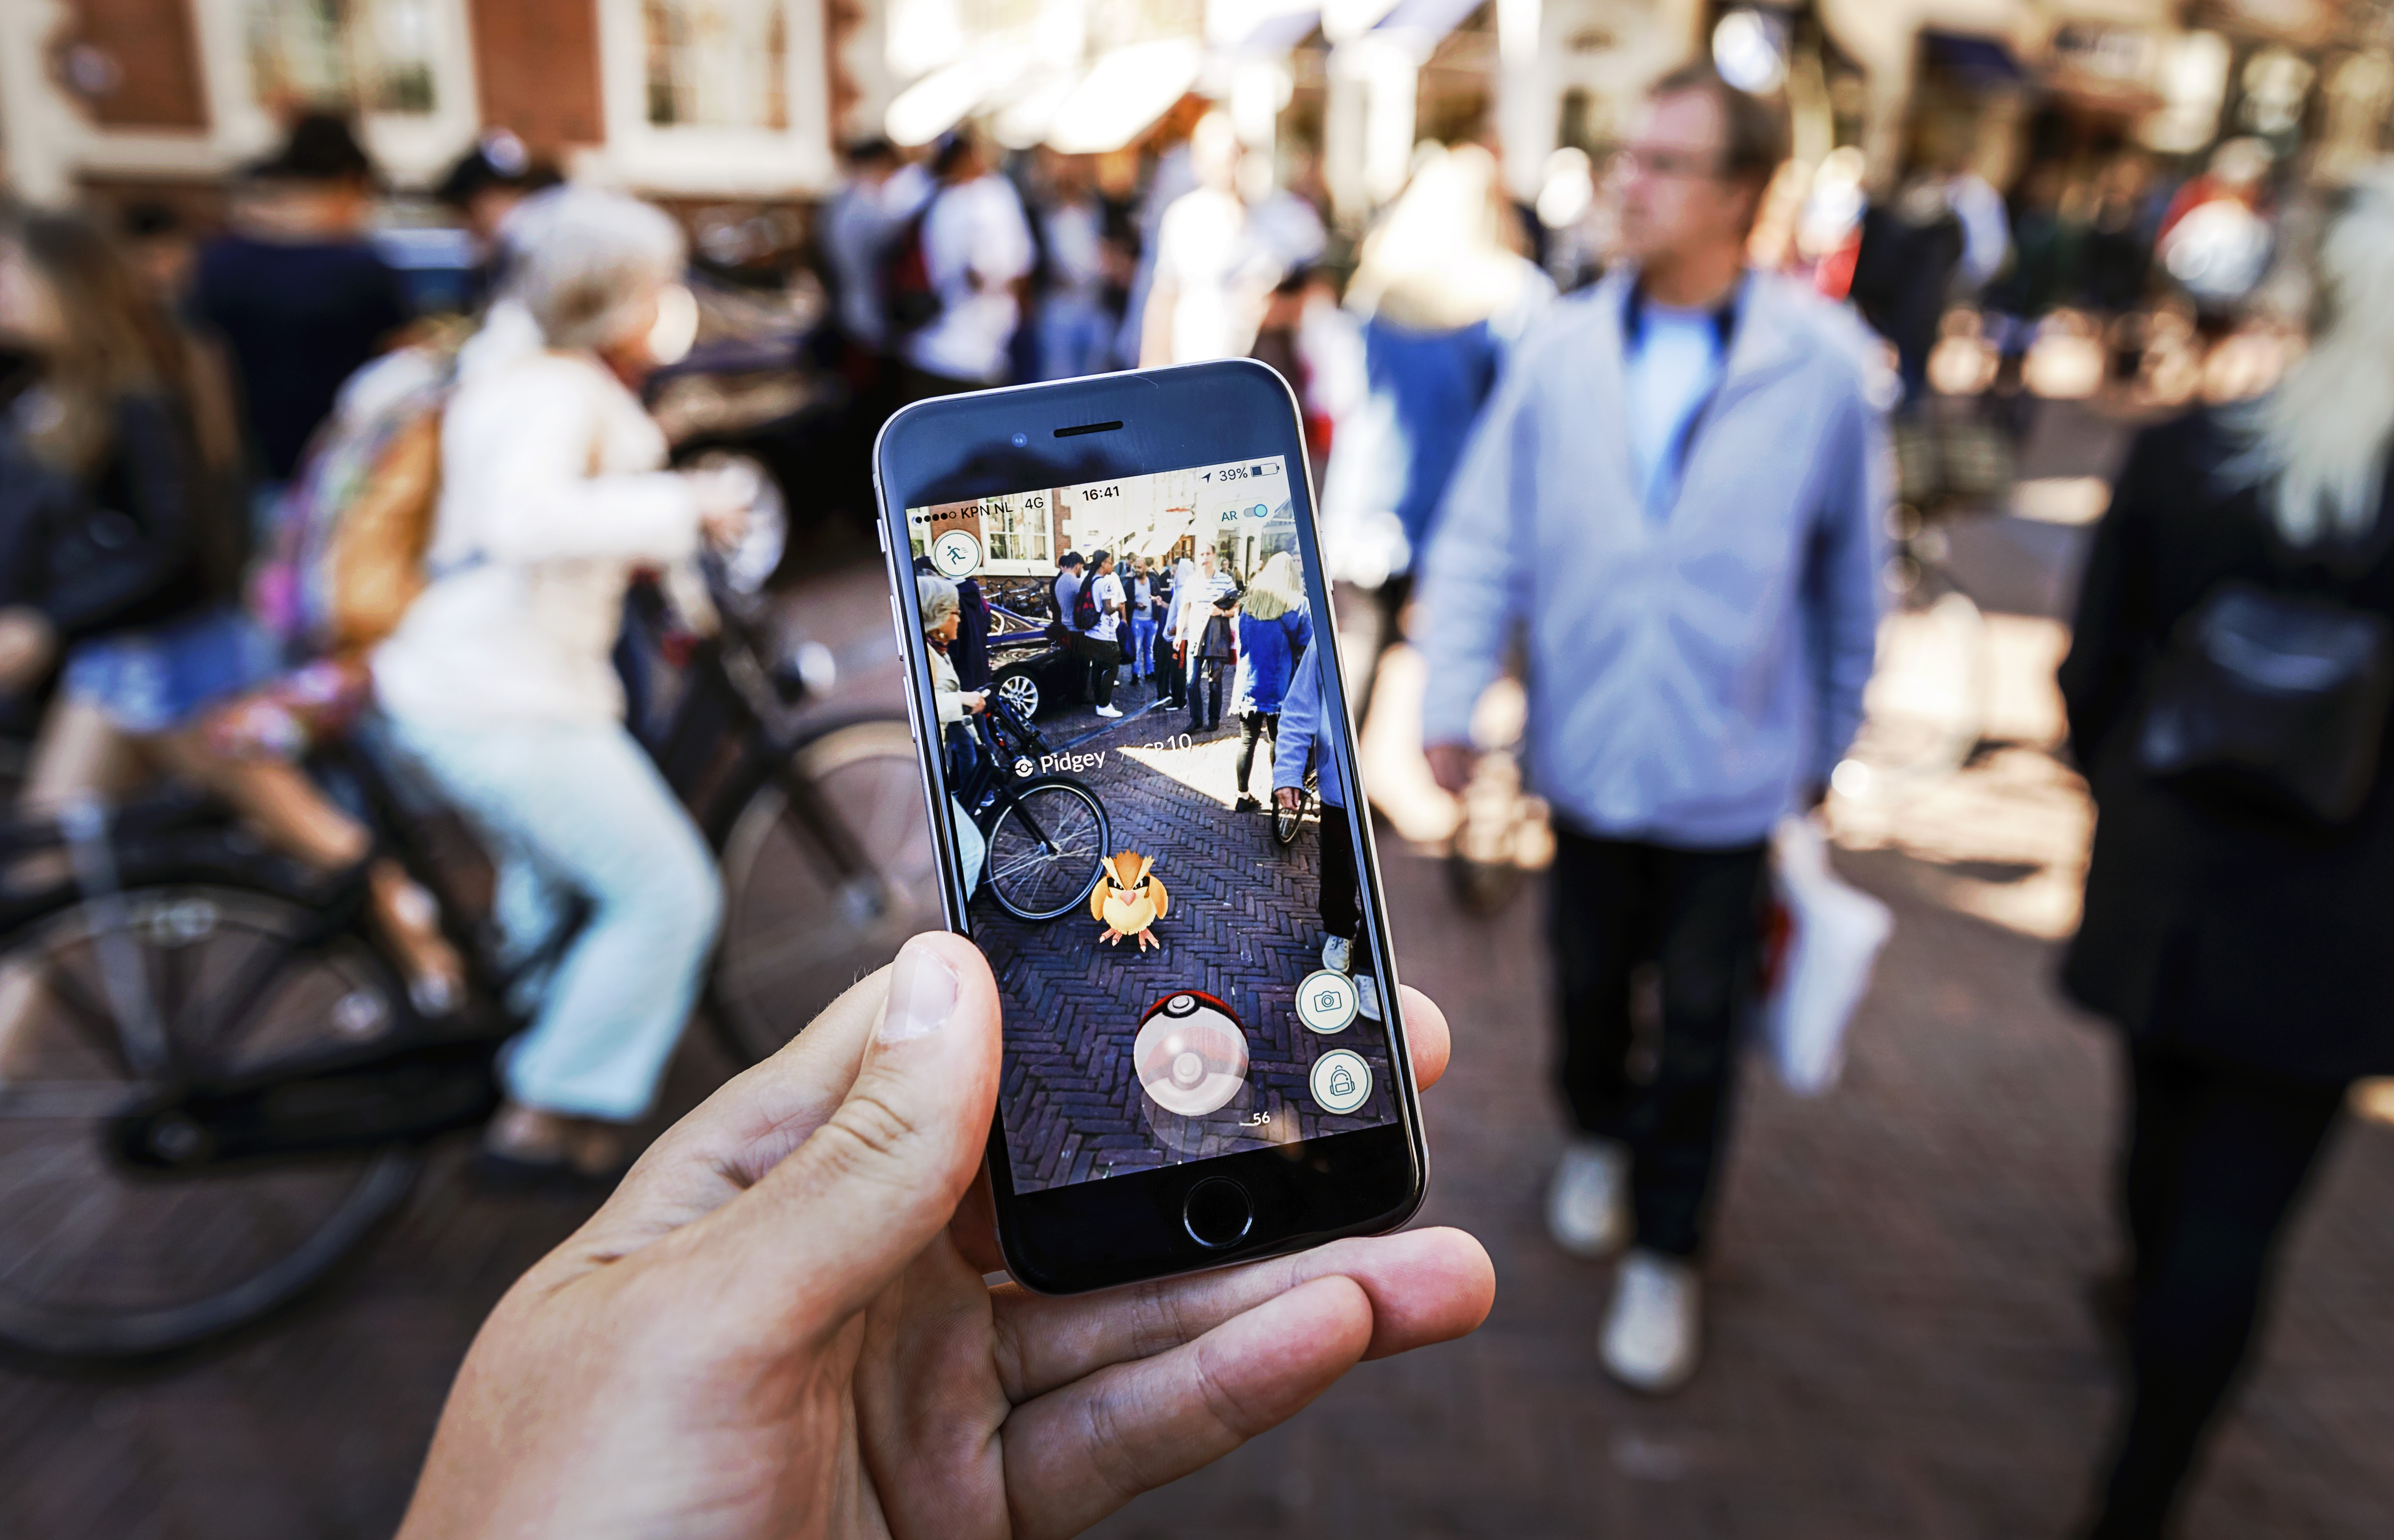 Gamers play with the Pokemon Go application on their mobile phone, at the Grote Markt in Haarlem, on July 13, 2016.